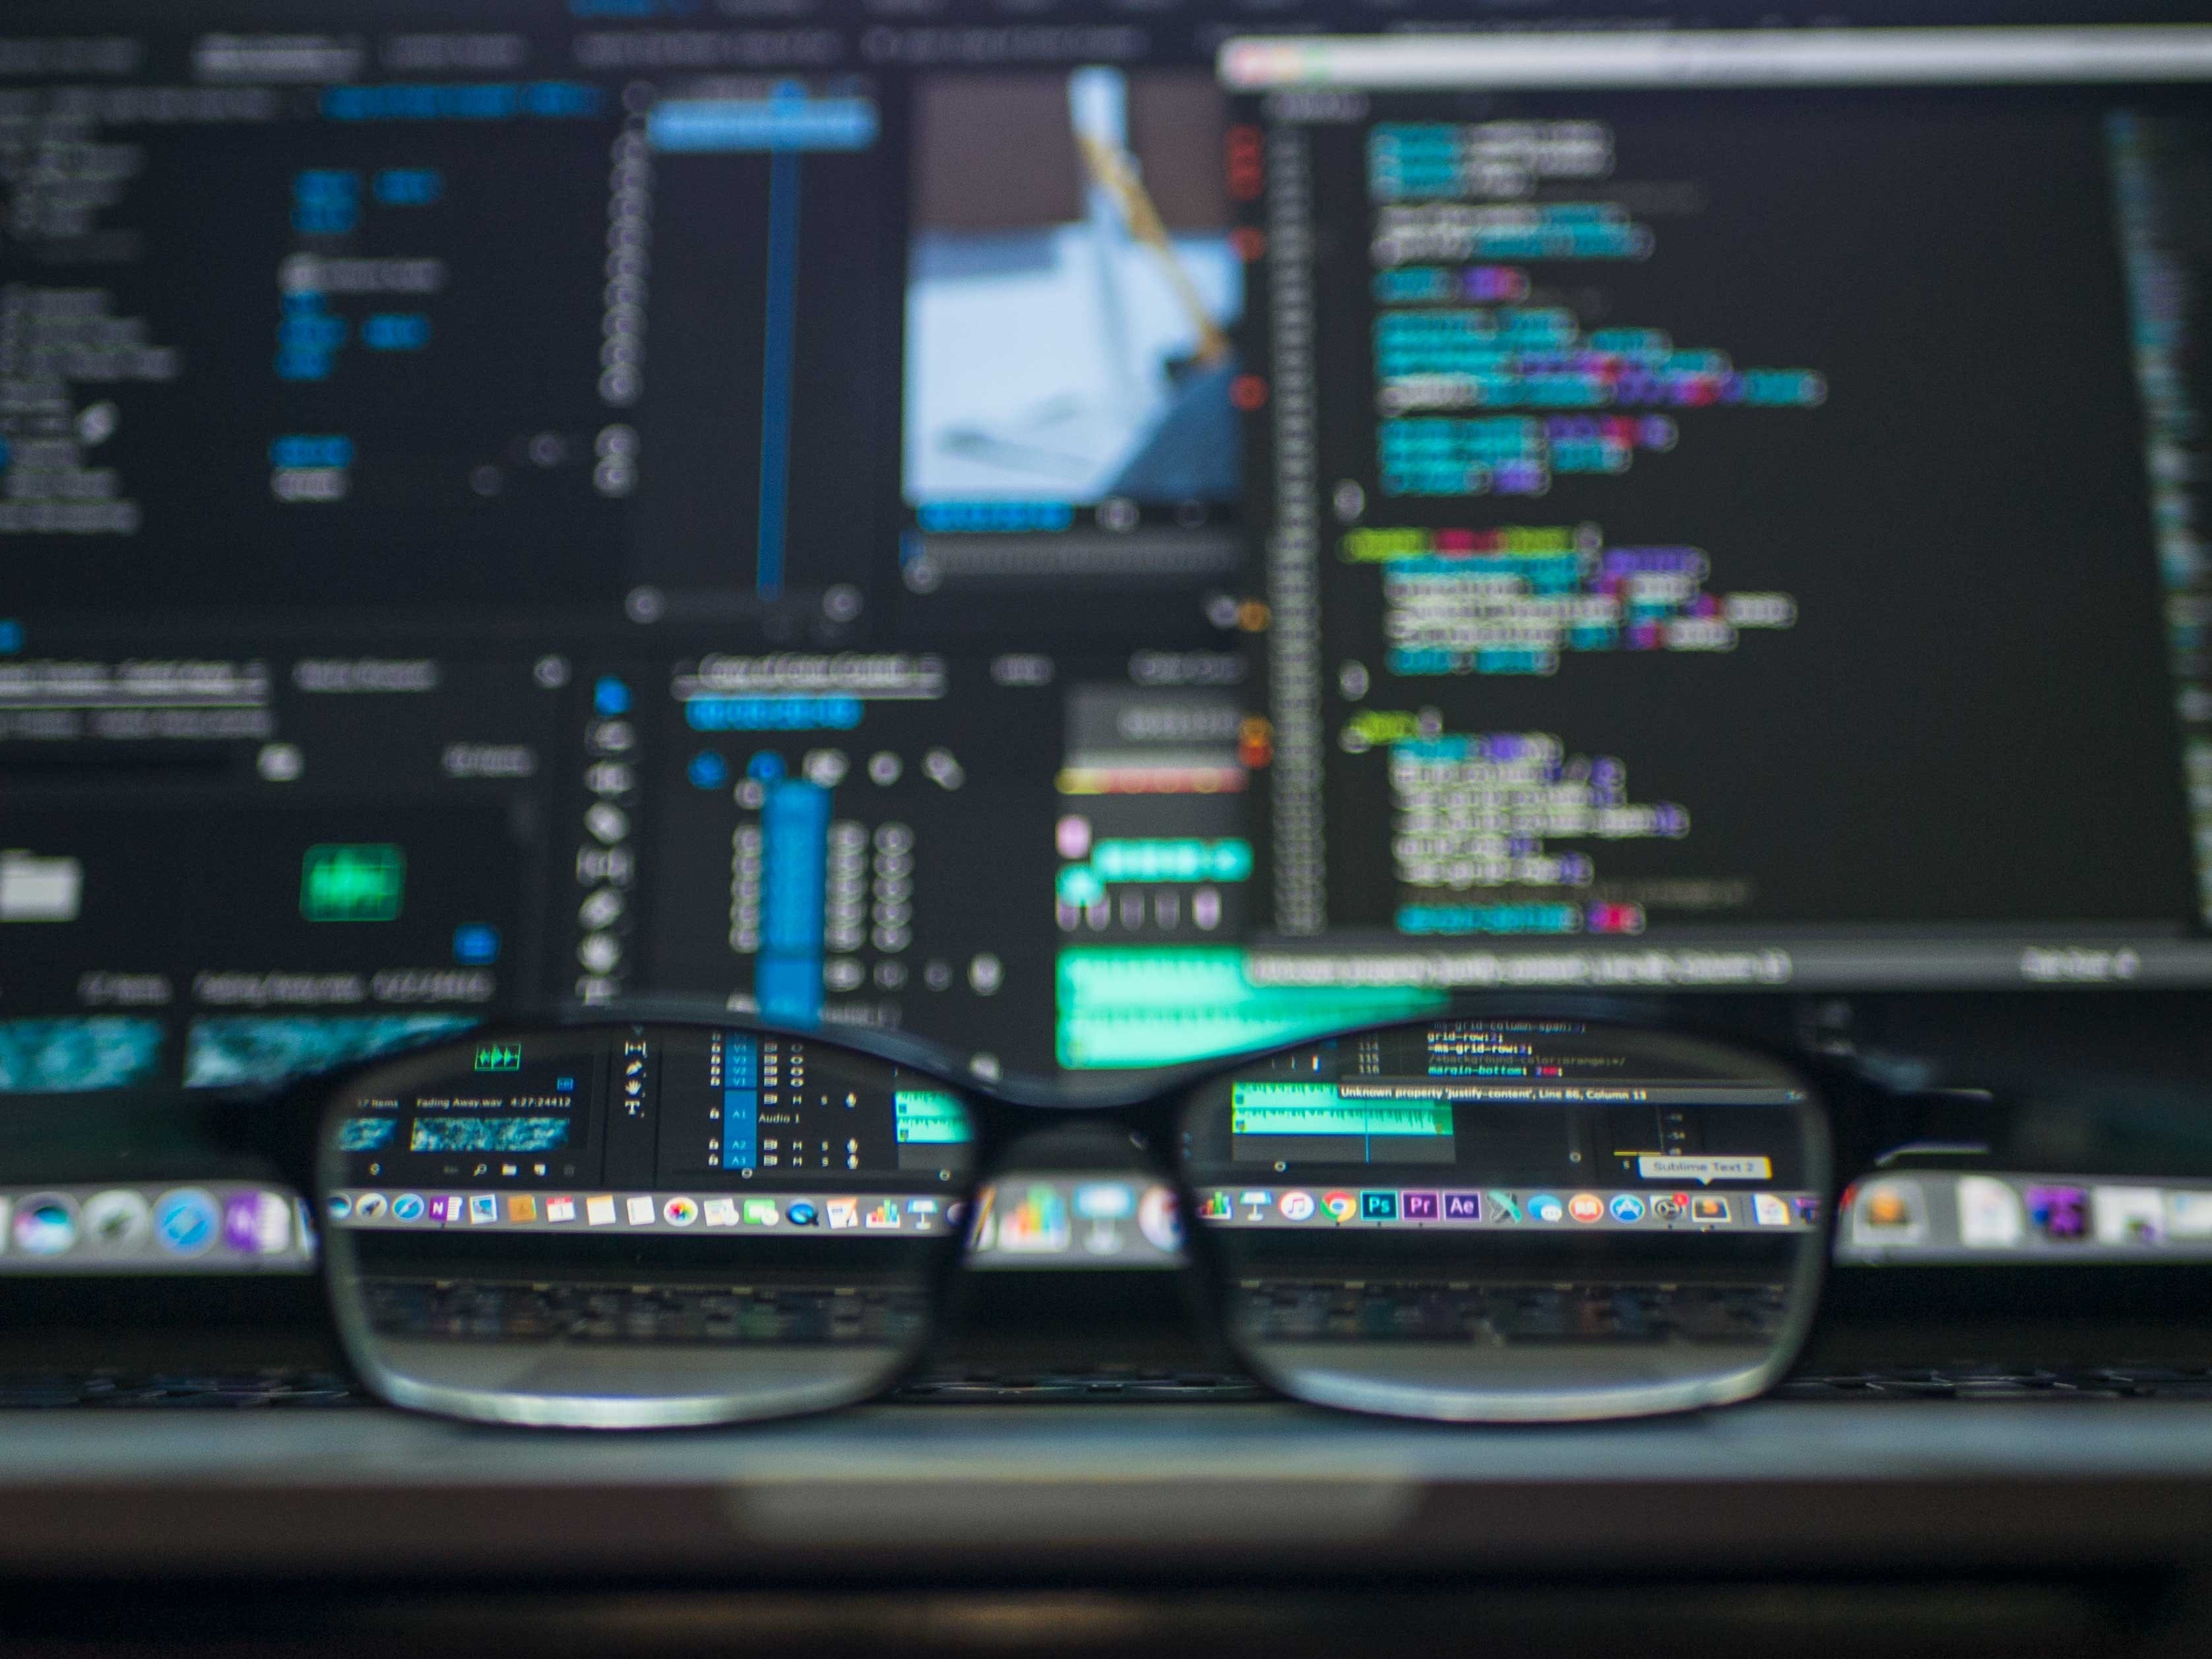 glasses in front of screen with structured data